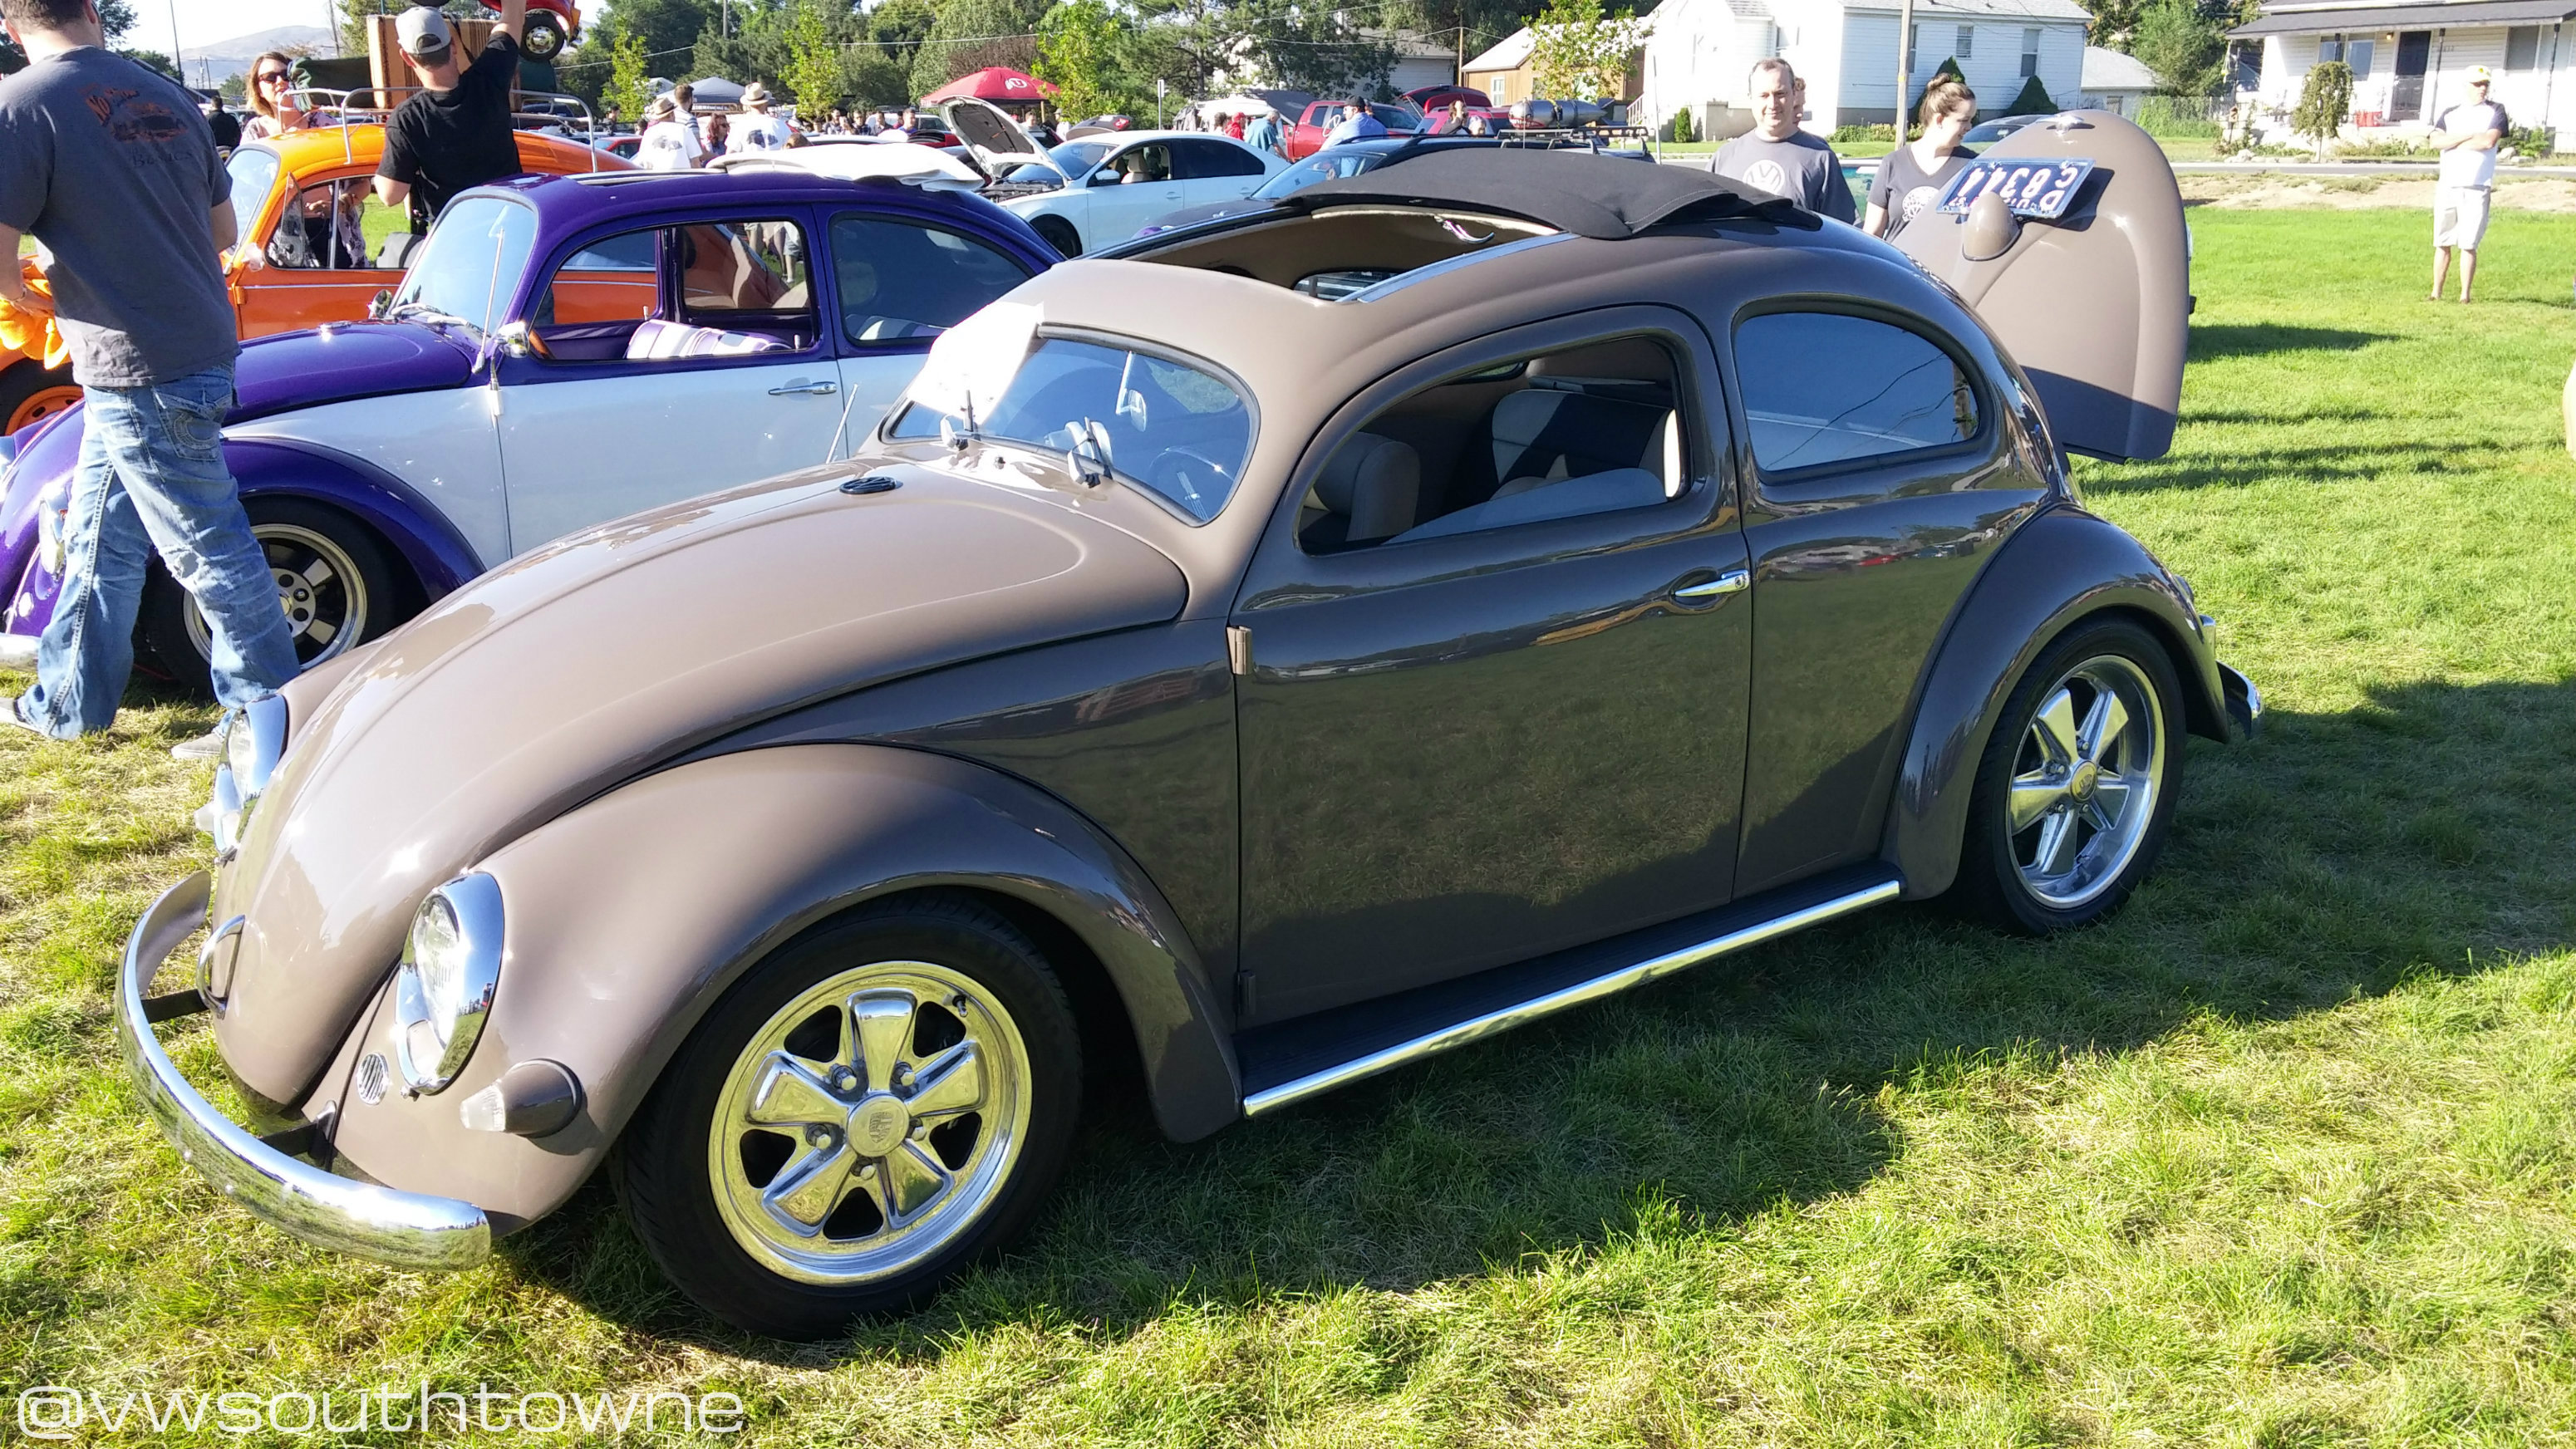 2015 utah vw classic car show utah vdub nation. Black Bedroom Furniture Sets. Home Design Ideas